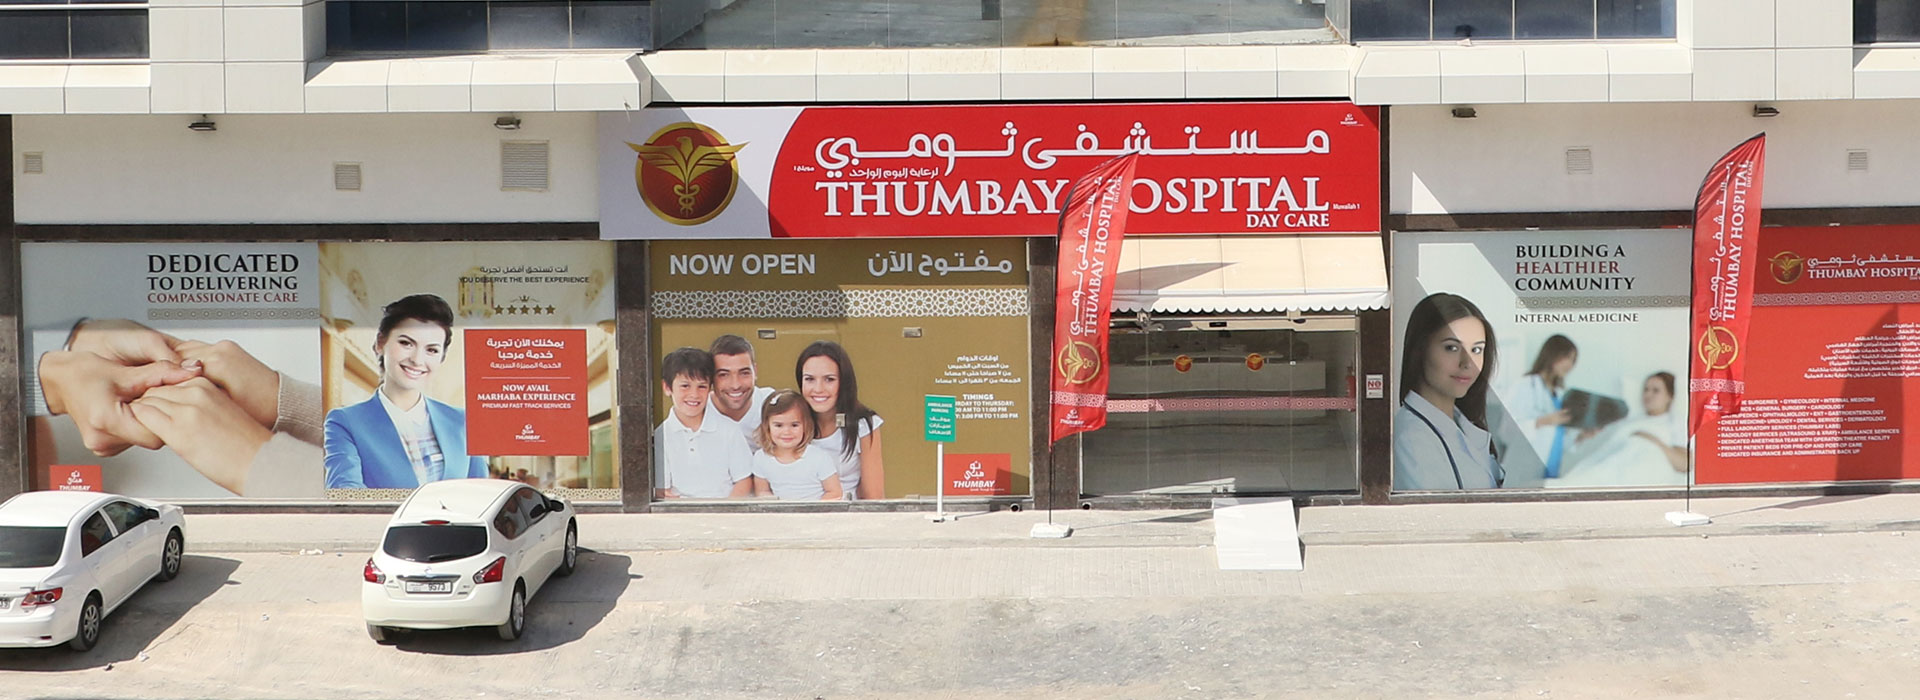 Thumbay Hospital Daycare, Muweilah